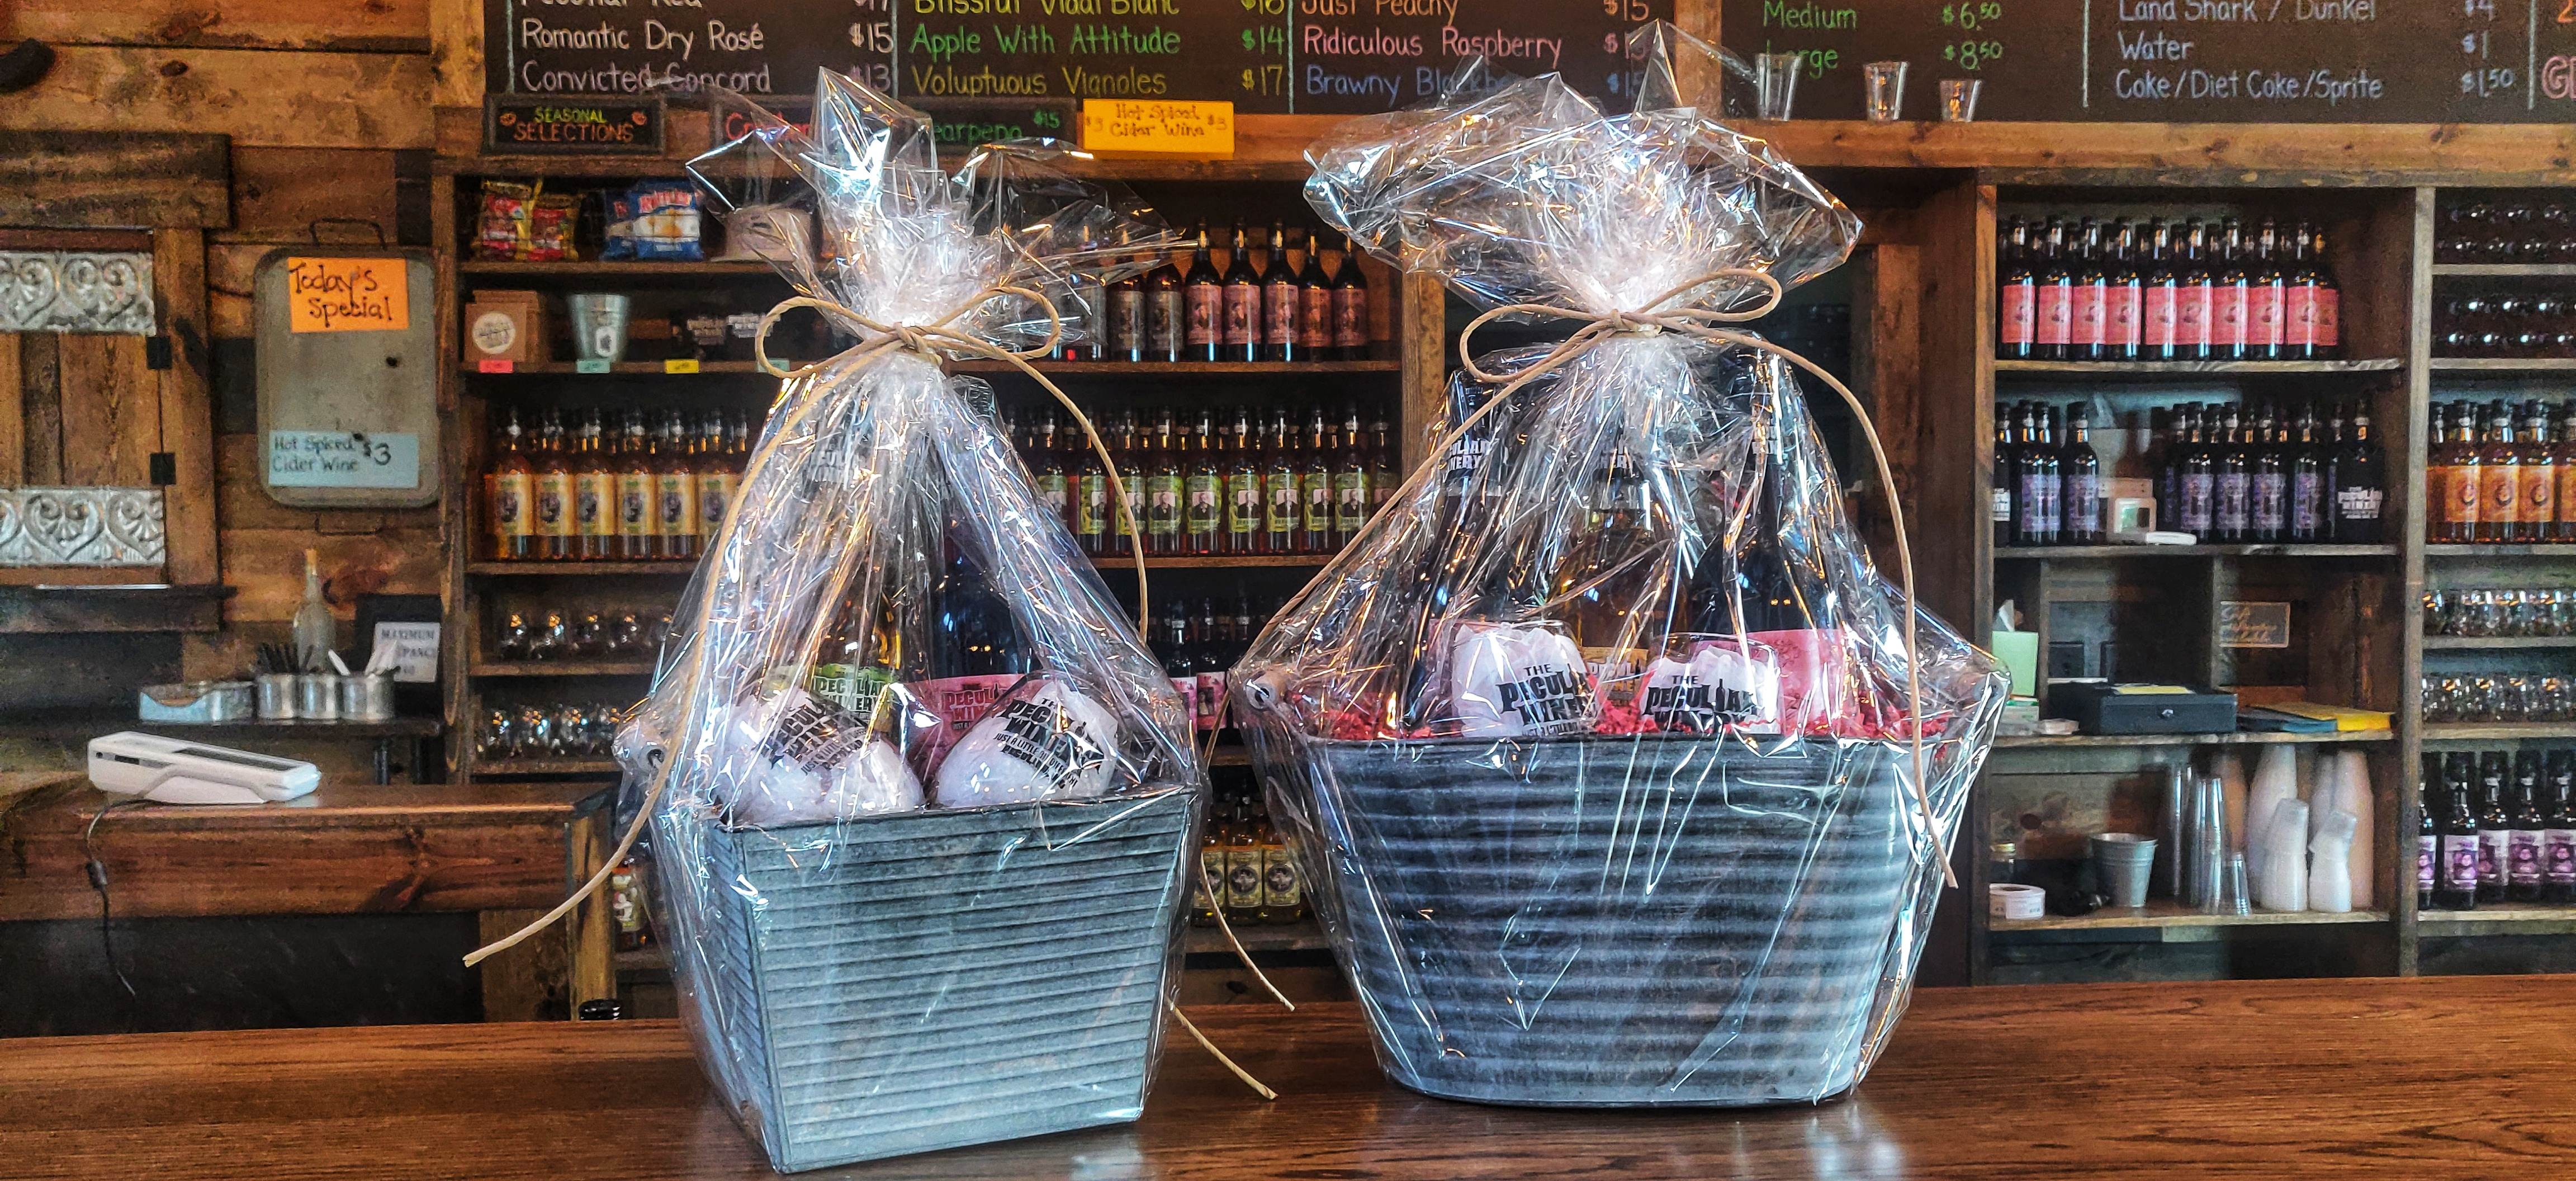 The Peculiar Winery Gift Basket